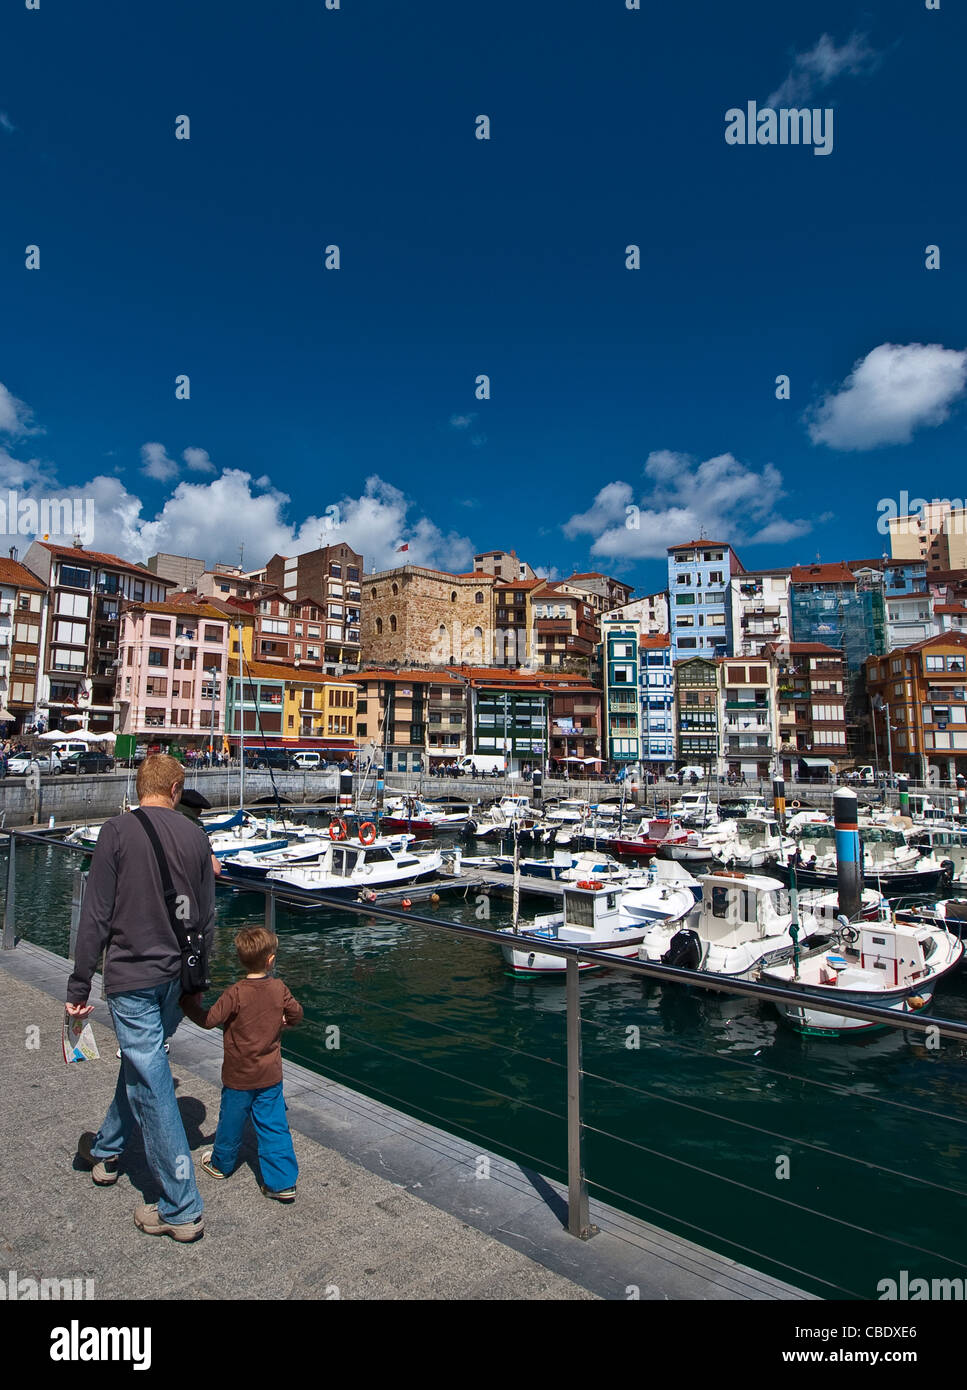 Port and village of Bermeo, province of Biscay, Basque Country, Euskadi, Spain, Europe. - Stock Image